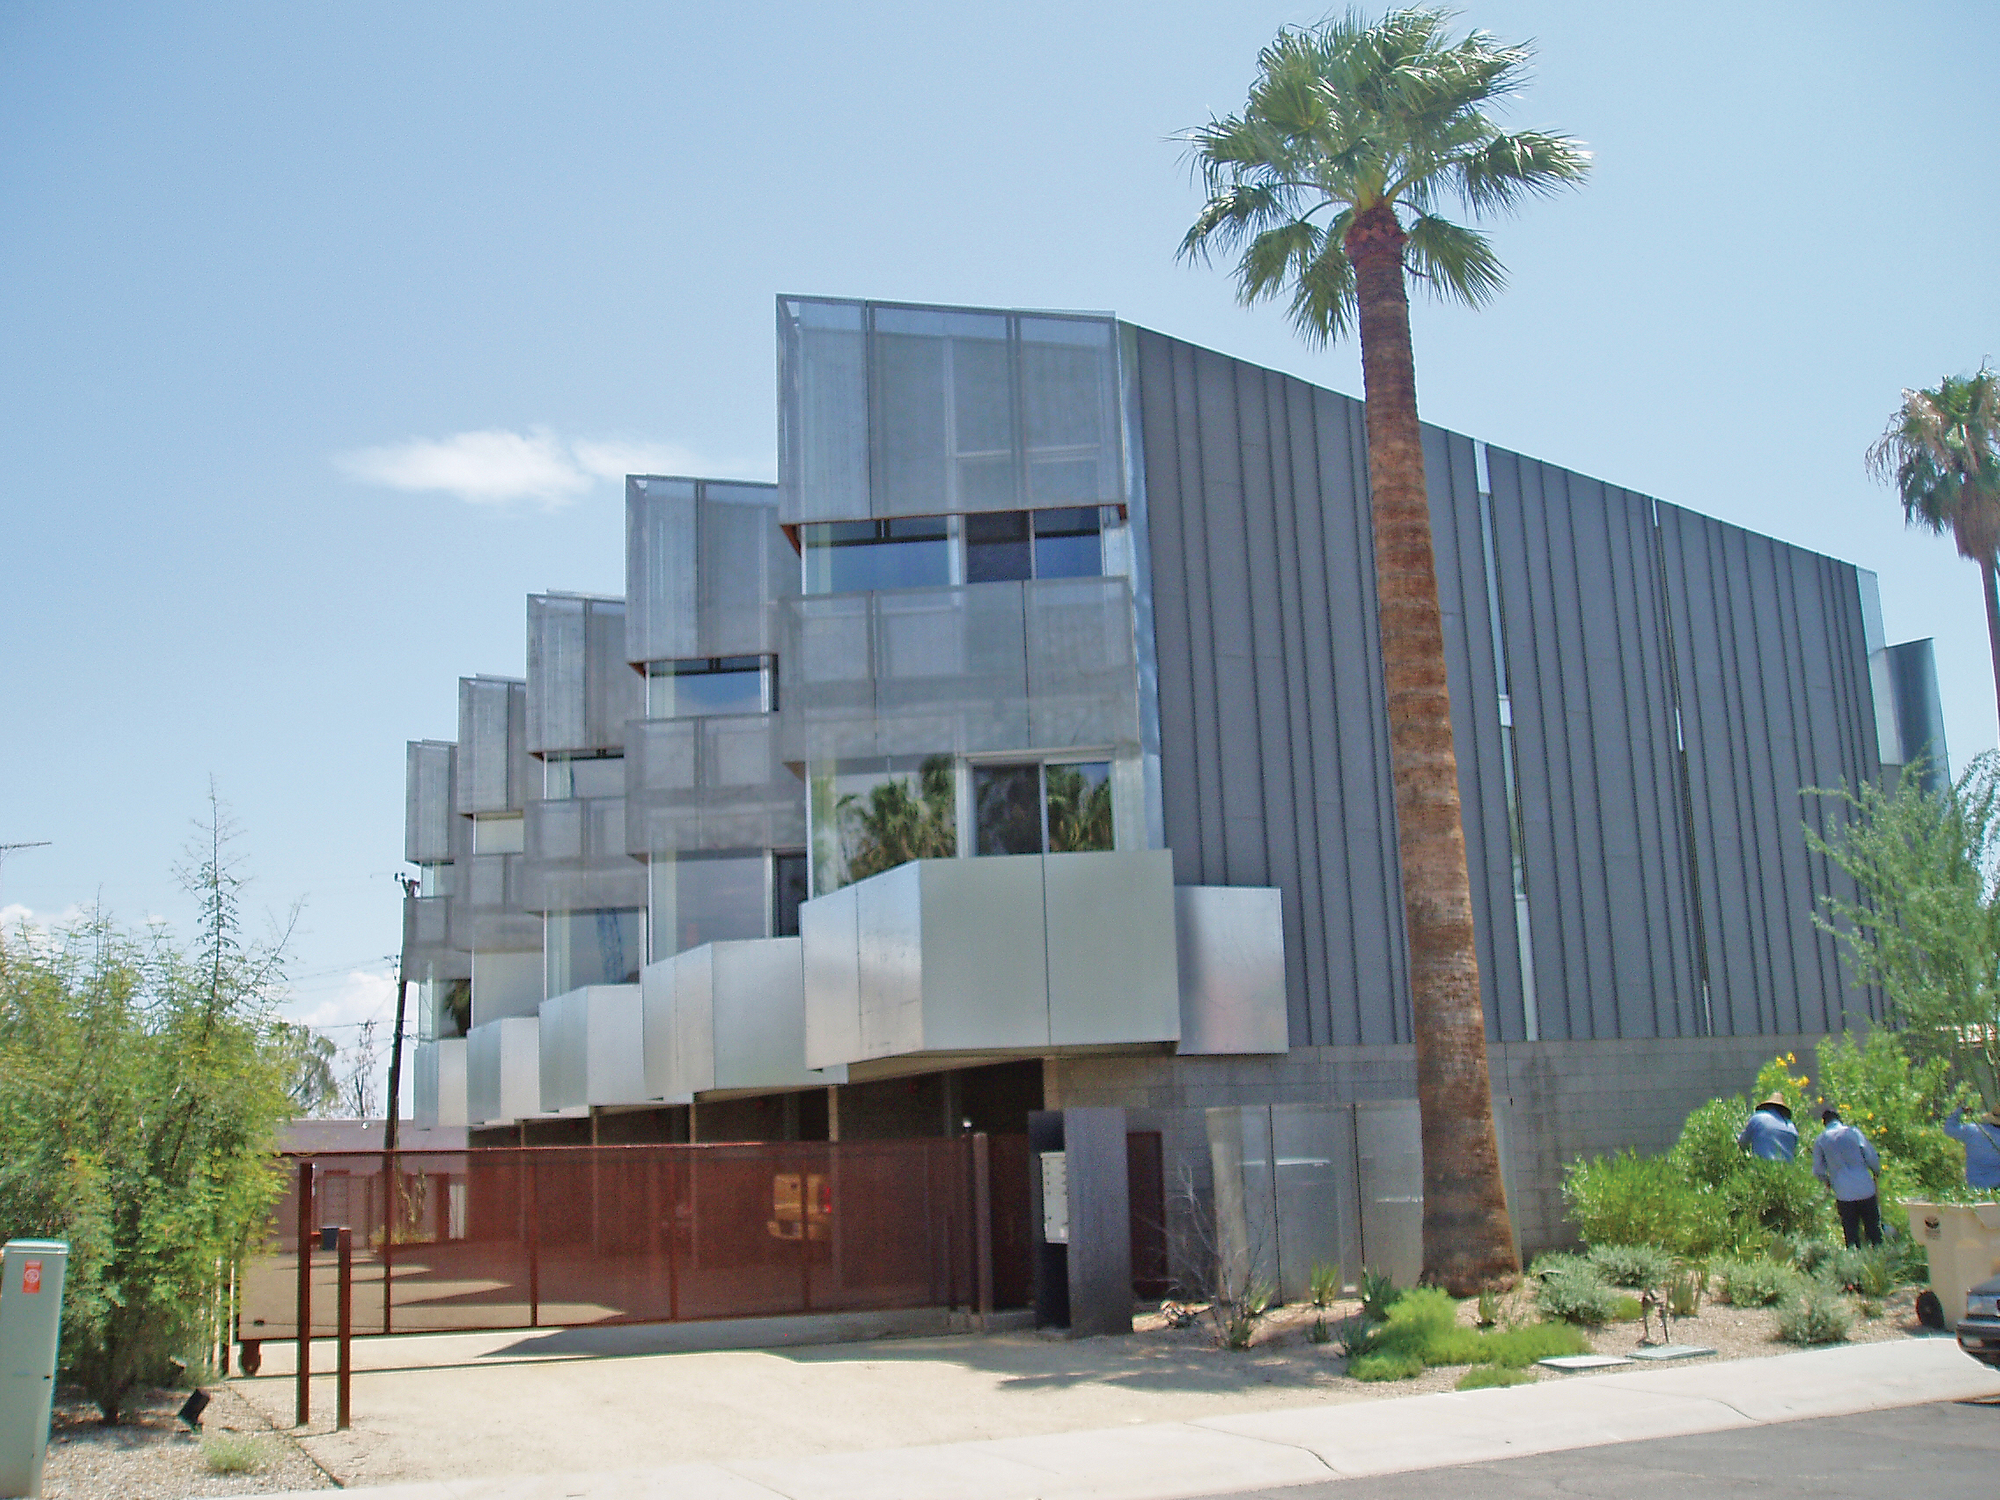 perforated metal sunshades at Loloma Townhomes 5 in Scottsdale